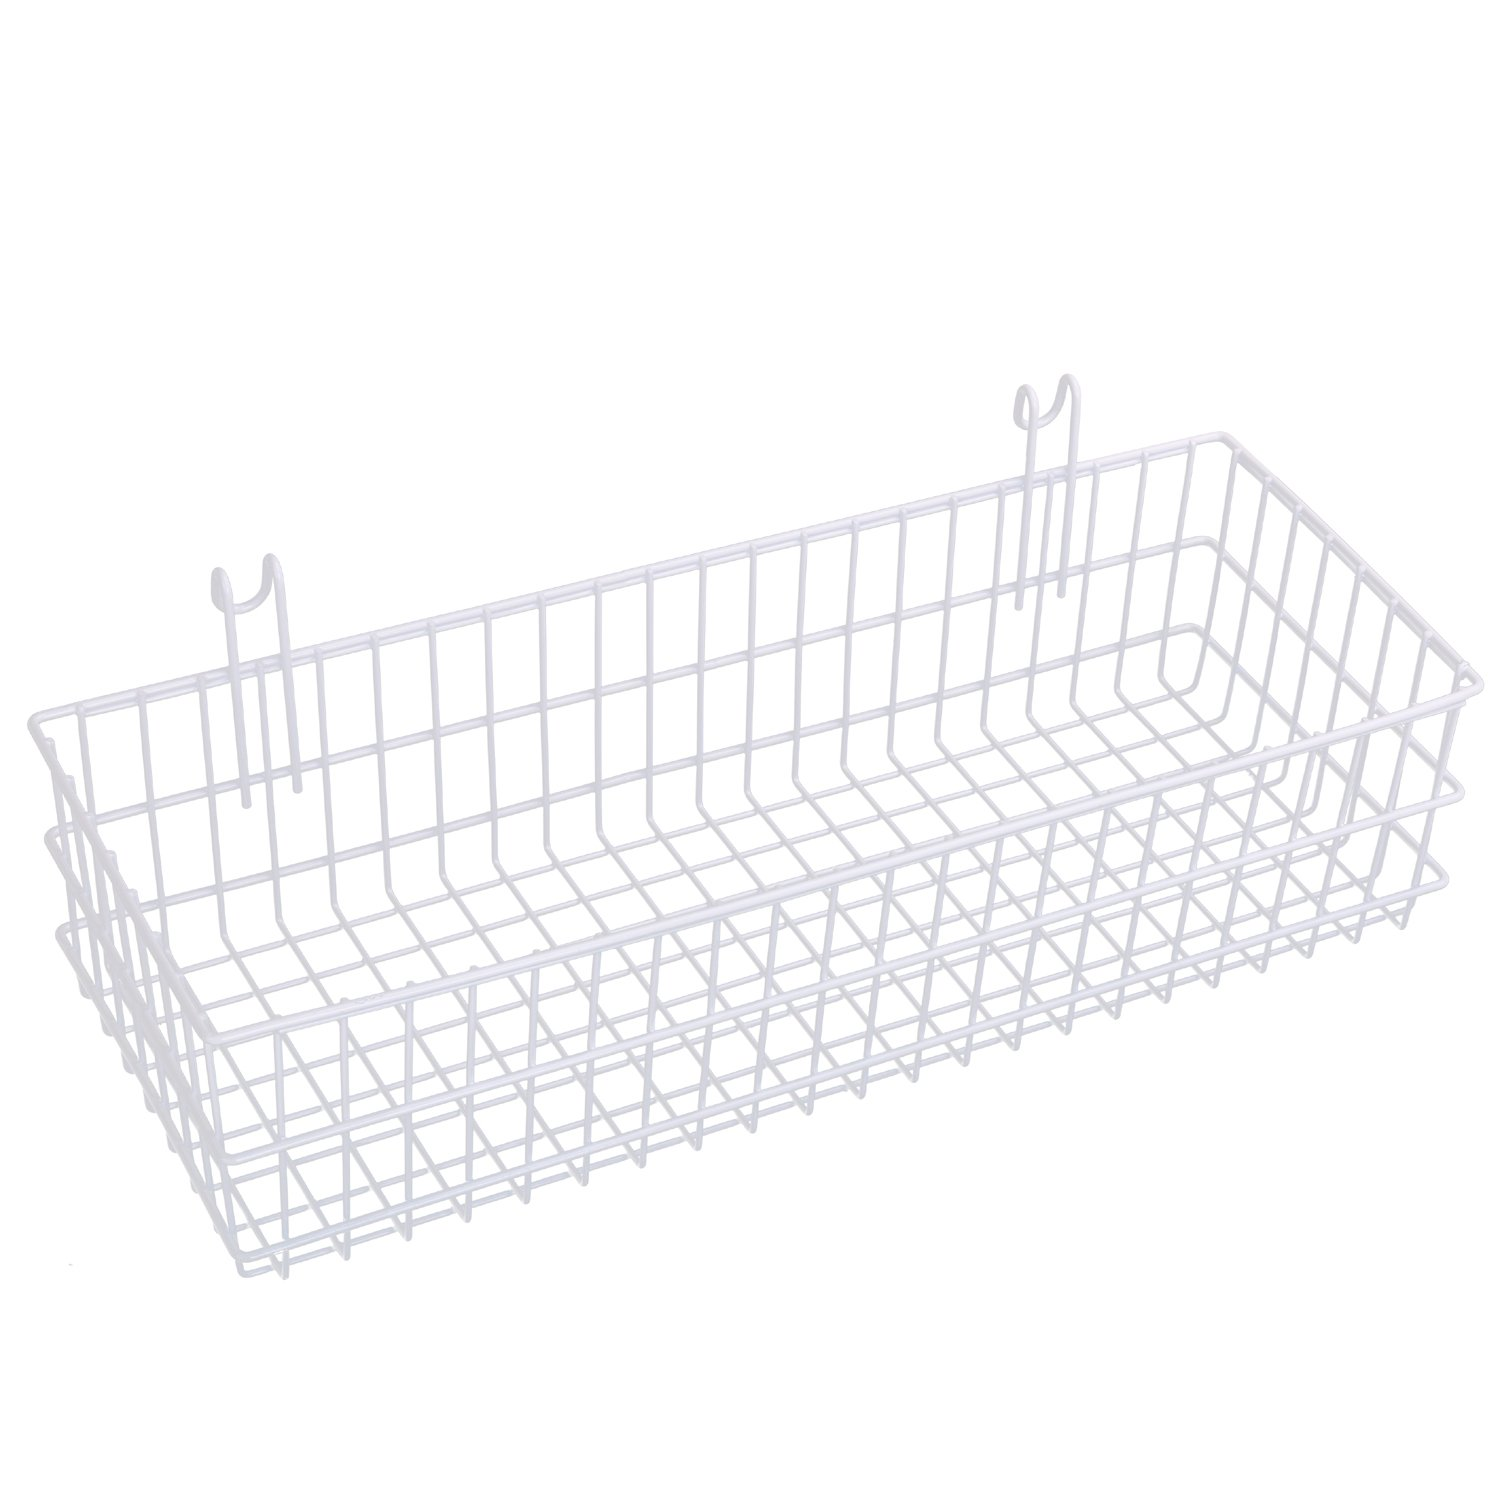 Kufox Multipurpose Mesh Wall Metal Wire Basket, Grid Panel Hanging Tray, Wall Mount Organizer, Wire Storage Shelf Rack For Home Supplies, Wall Decor, Medium Size, White Coated